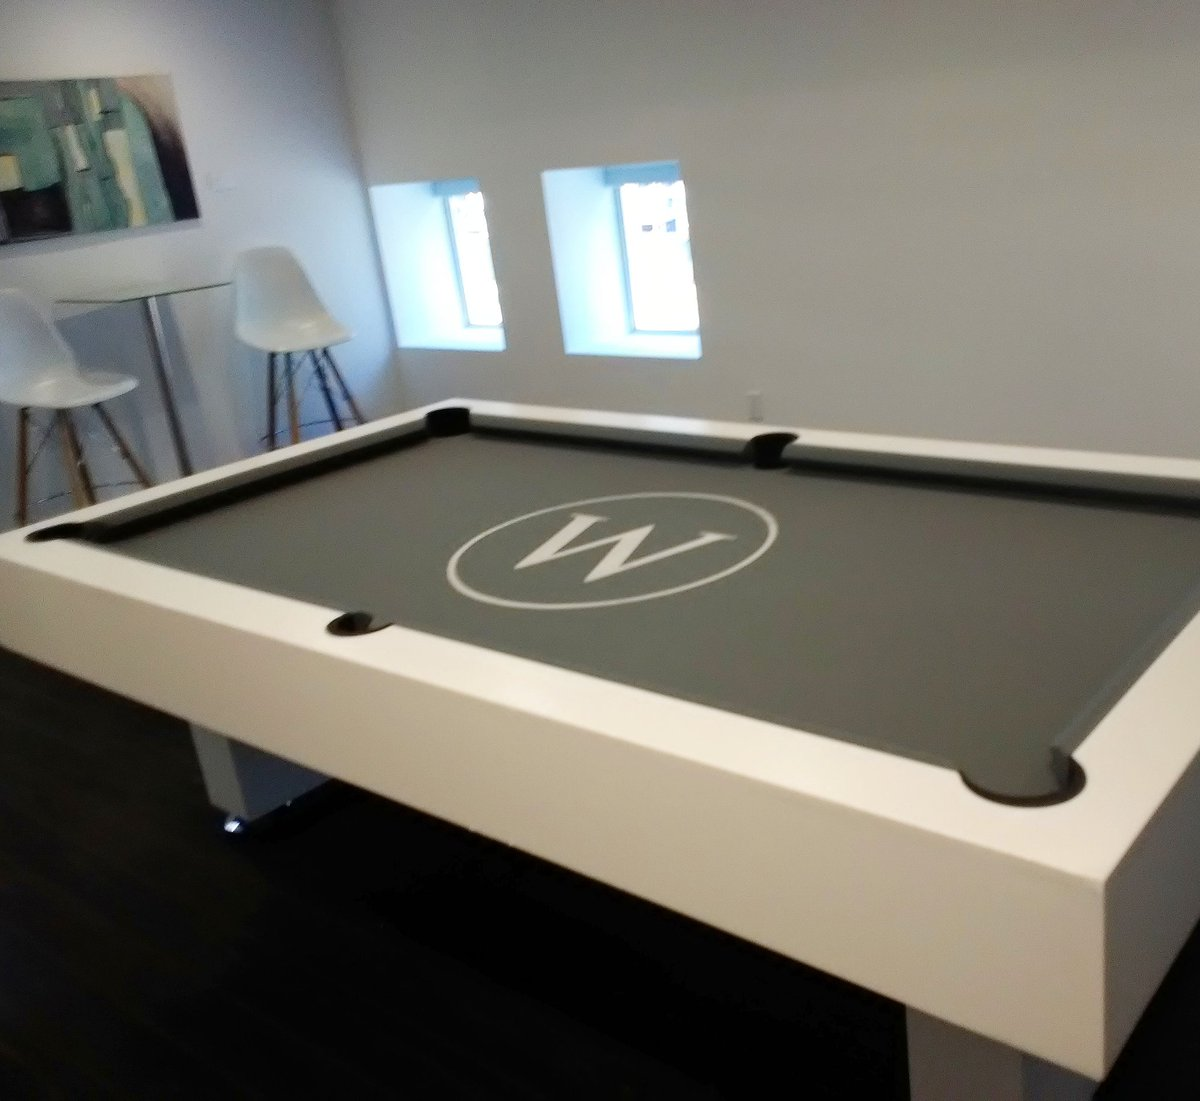 Groovy Mccorkle Designs On Twitter 8Ft Pooltable Billiards Home Interior And Landscaping Ologienasavecom